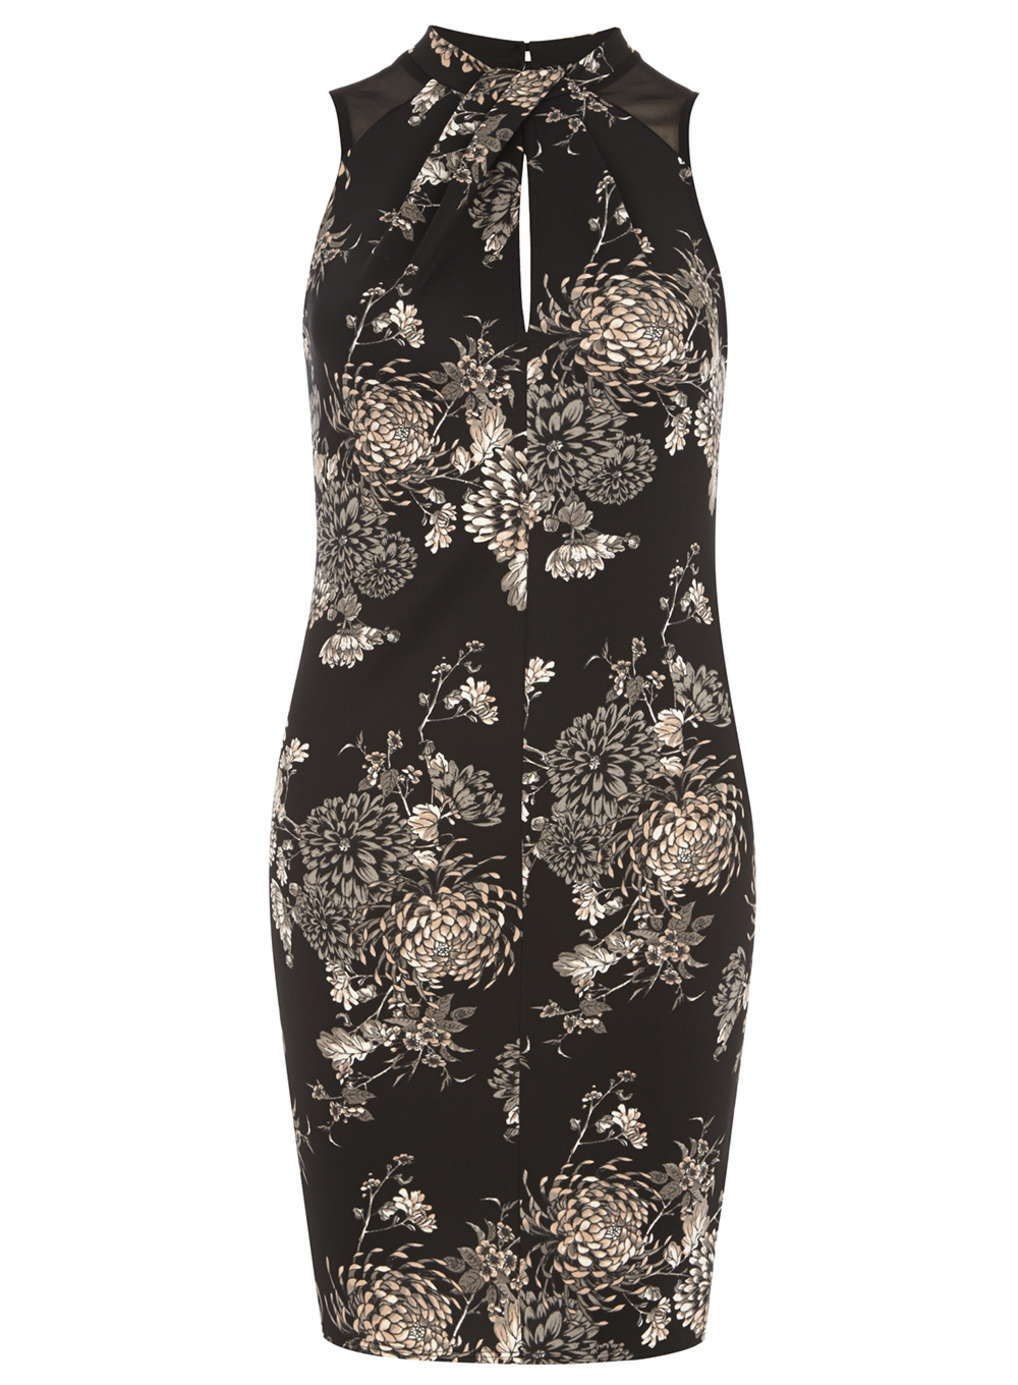 No. 9 in Christmas eve outfits : Petite Floral Print Dress @ £24.00